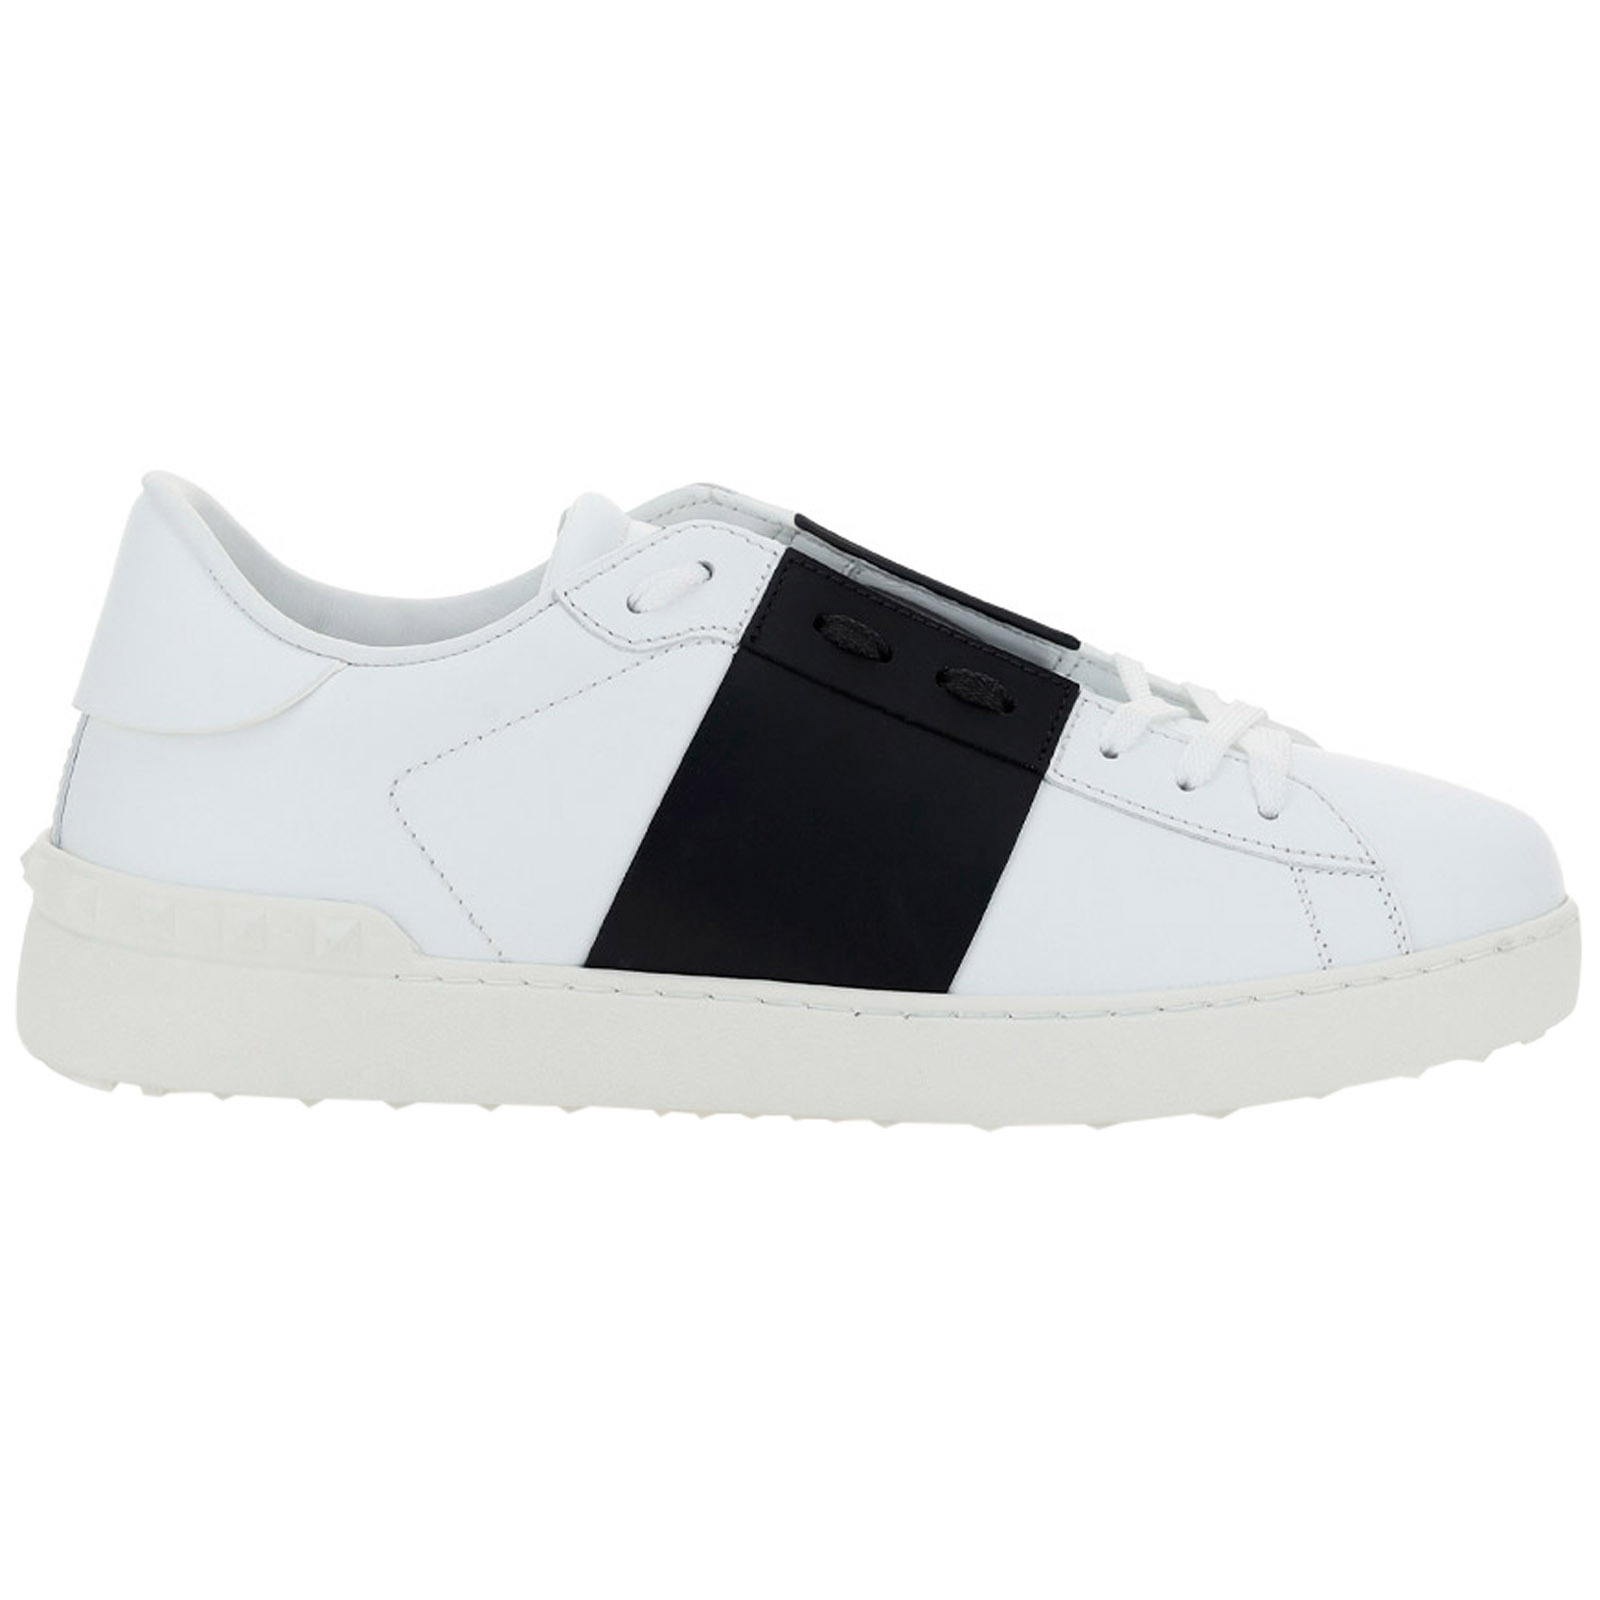 Valentino MEN'S SHOES LEATHER TRAINERS SNEAKERS OPEN